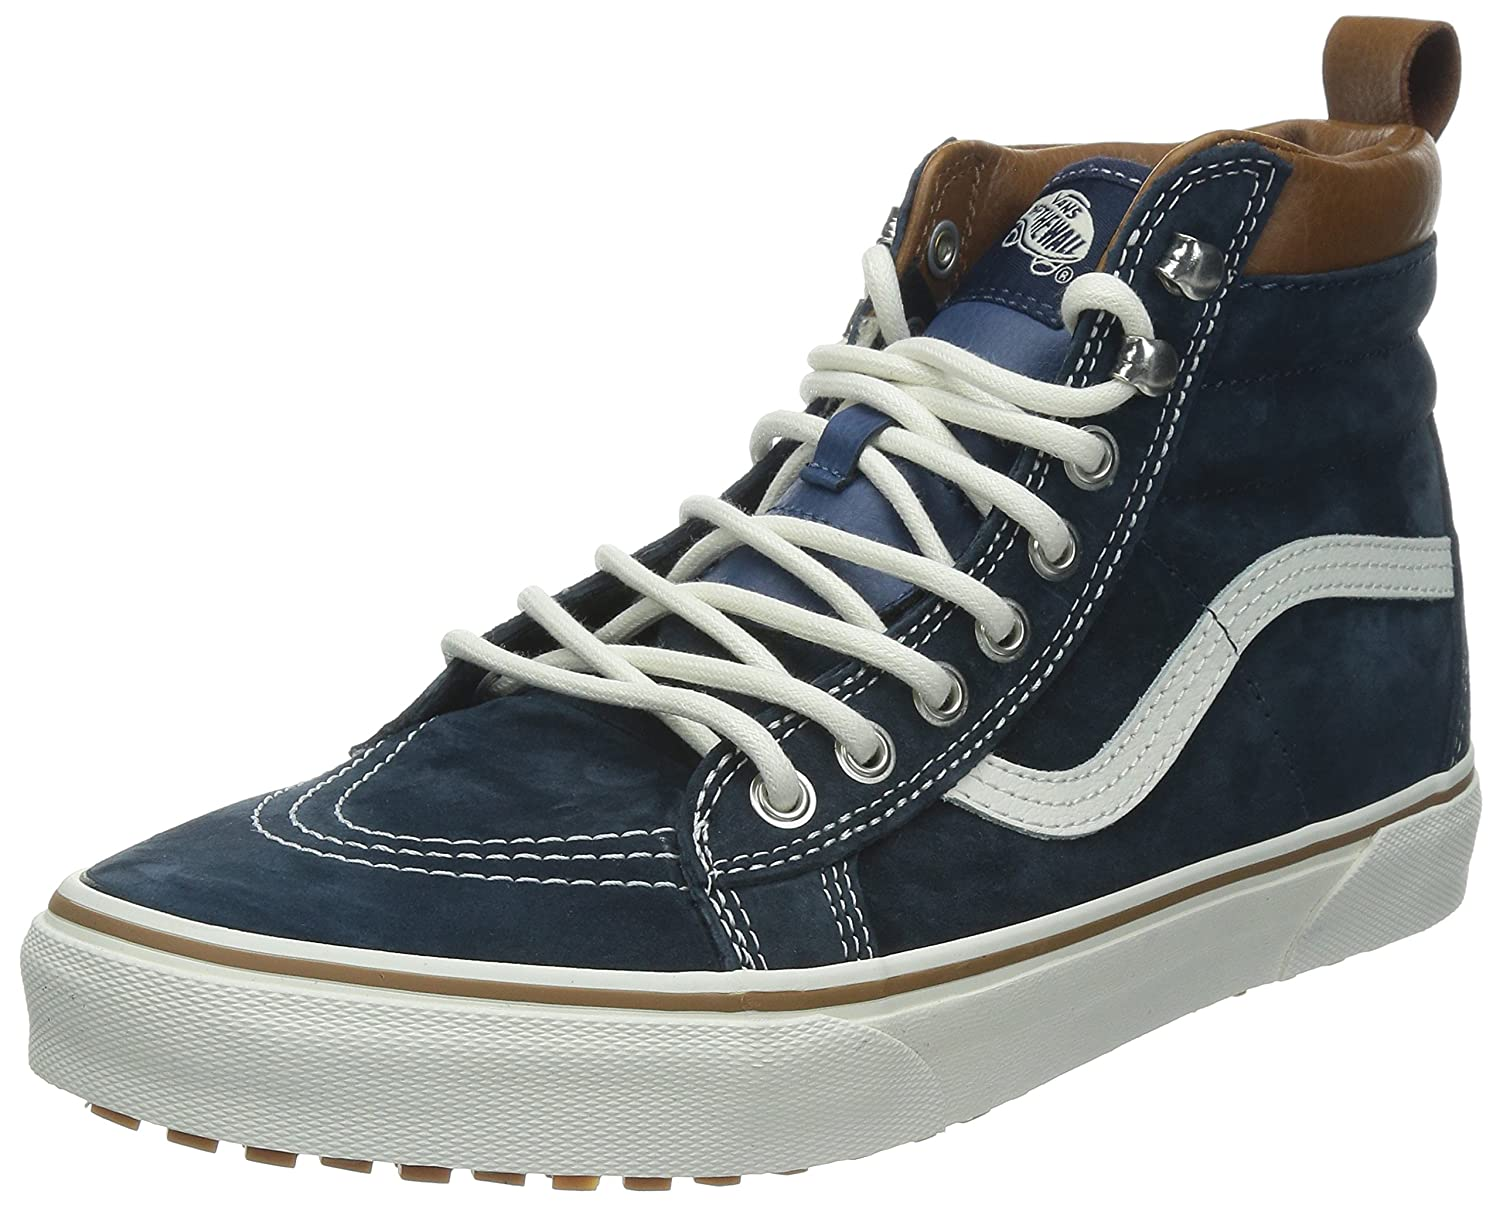 Vans Sk8-Hi Unisex Casual High-Top Skate Shoes, Comfortable and Durable in Signature Waffle Rubber Sole B00HJBUJ18 13.5 Women / 12 Men M US|(Mte) Dress Blues